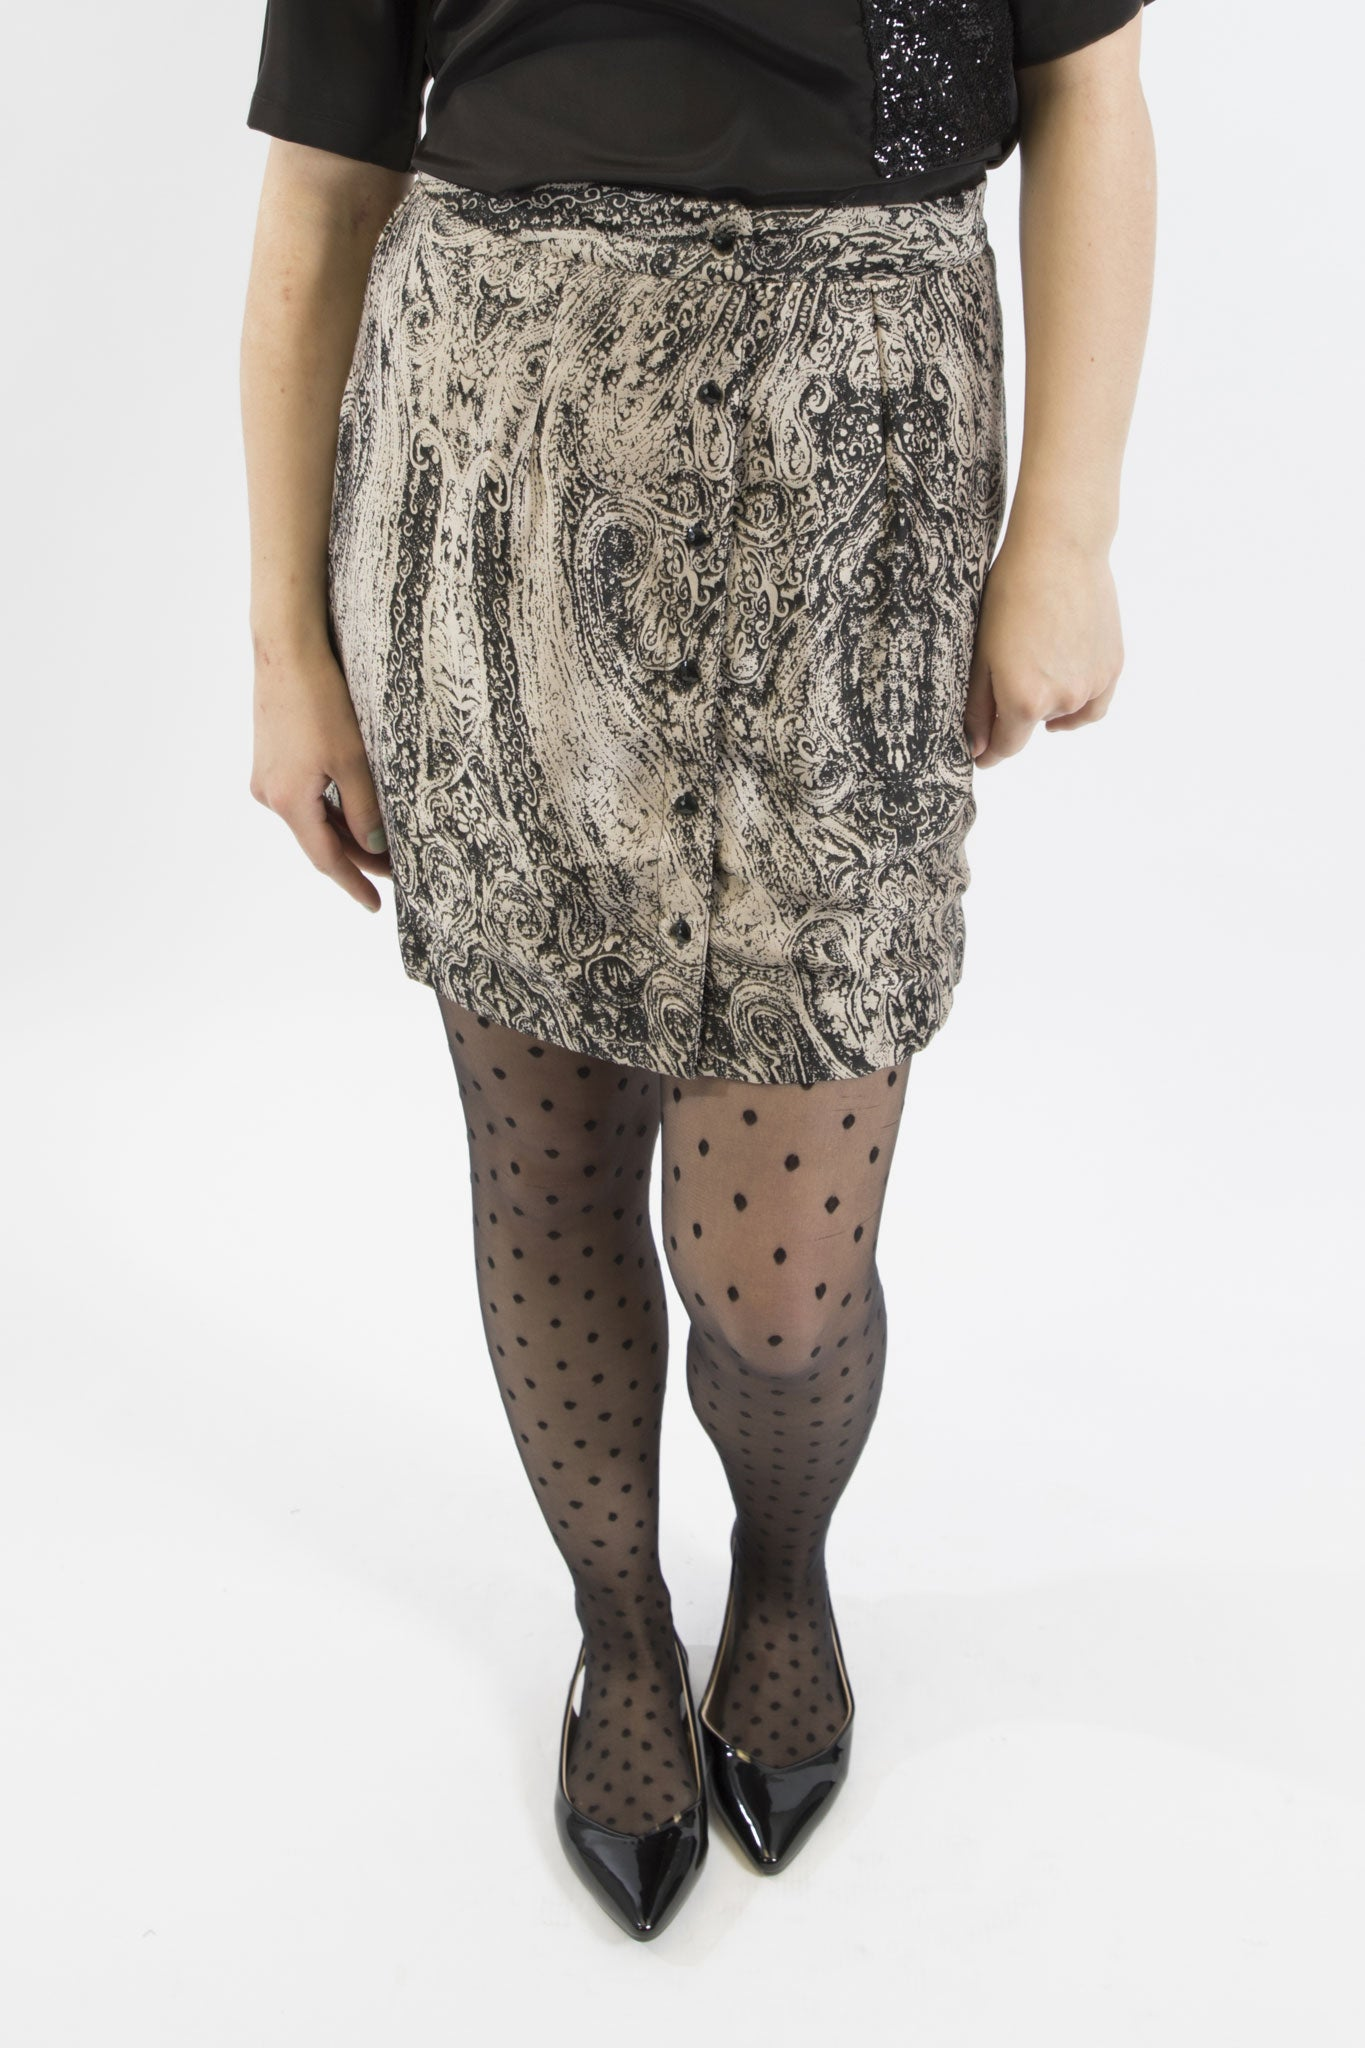 Sketch London artistic etching print button front short skirt work office smart casual ethical sustainable eco luxury